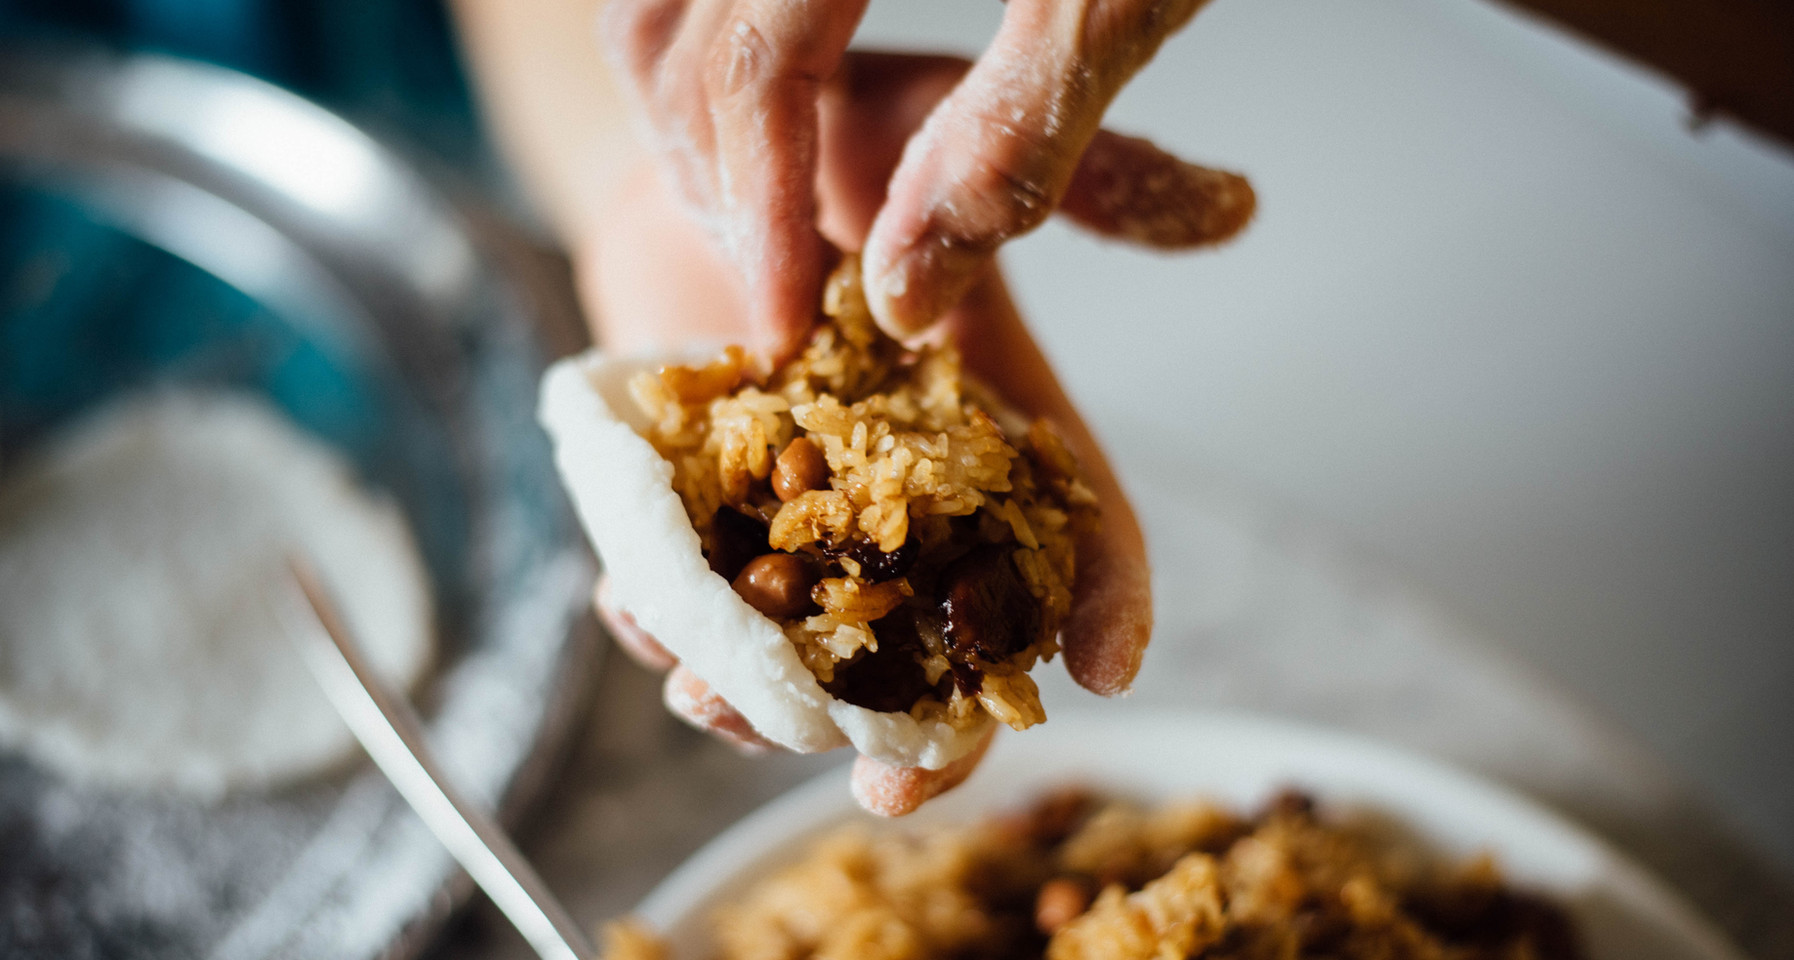 Stuffing Rice with Nuts